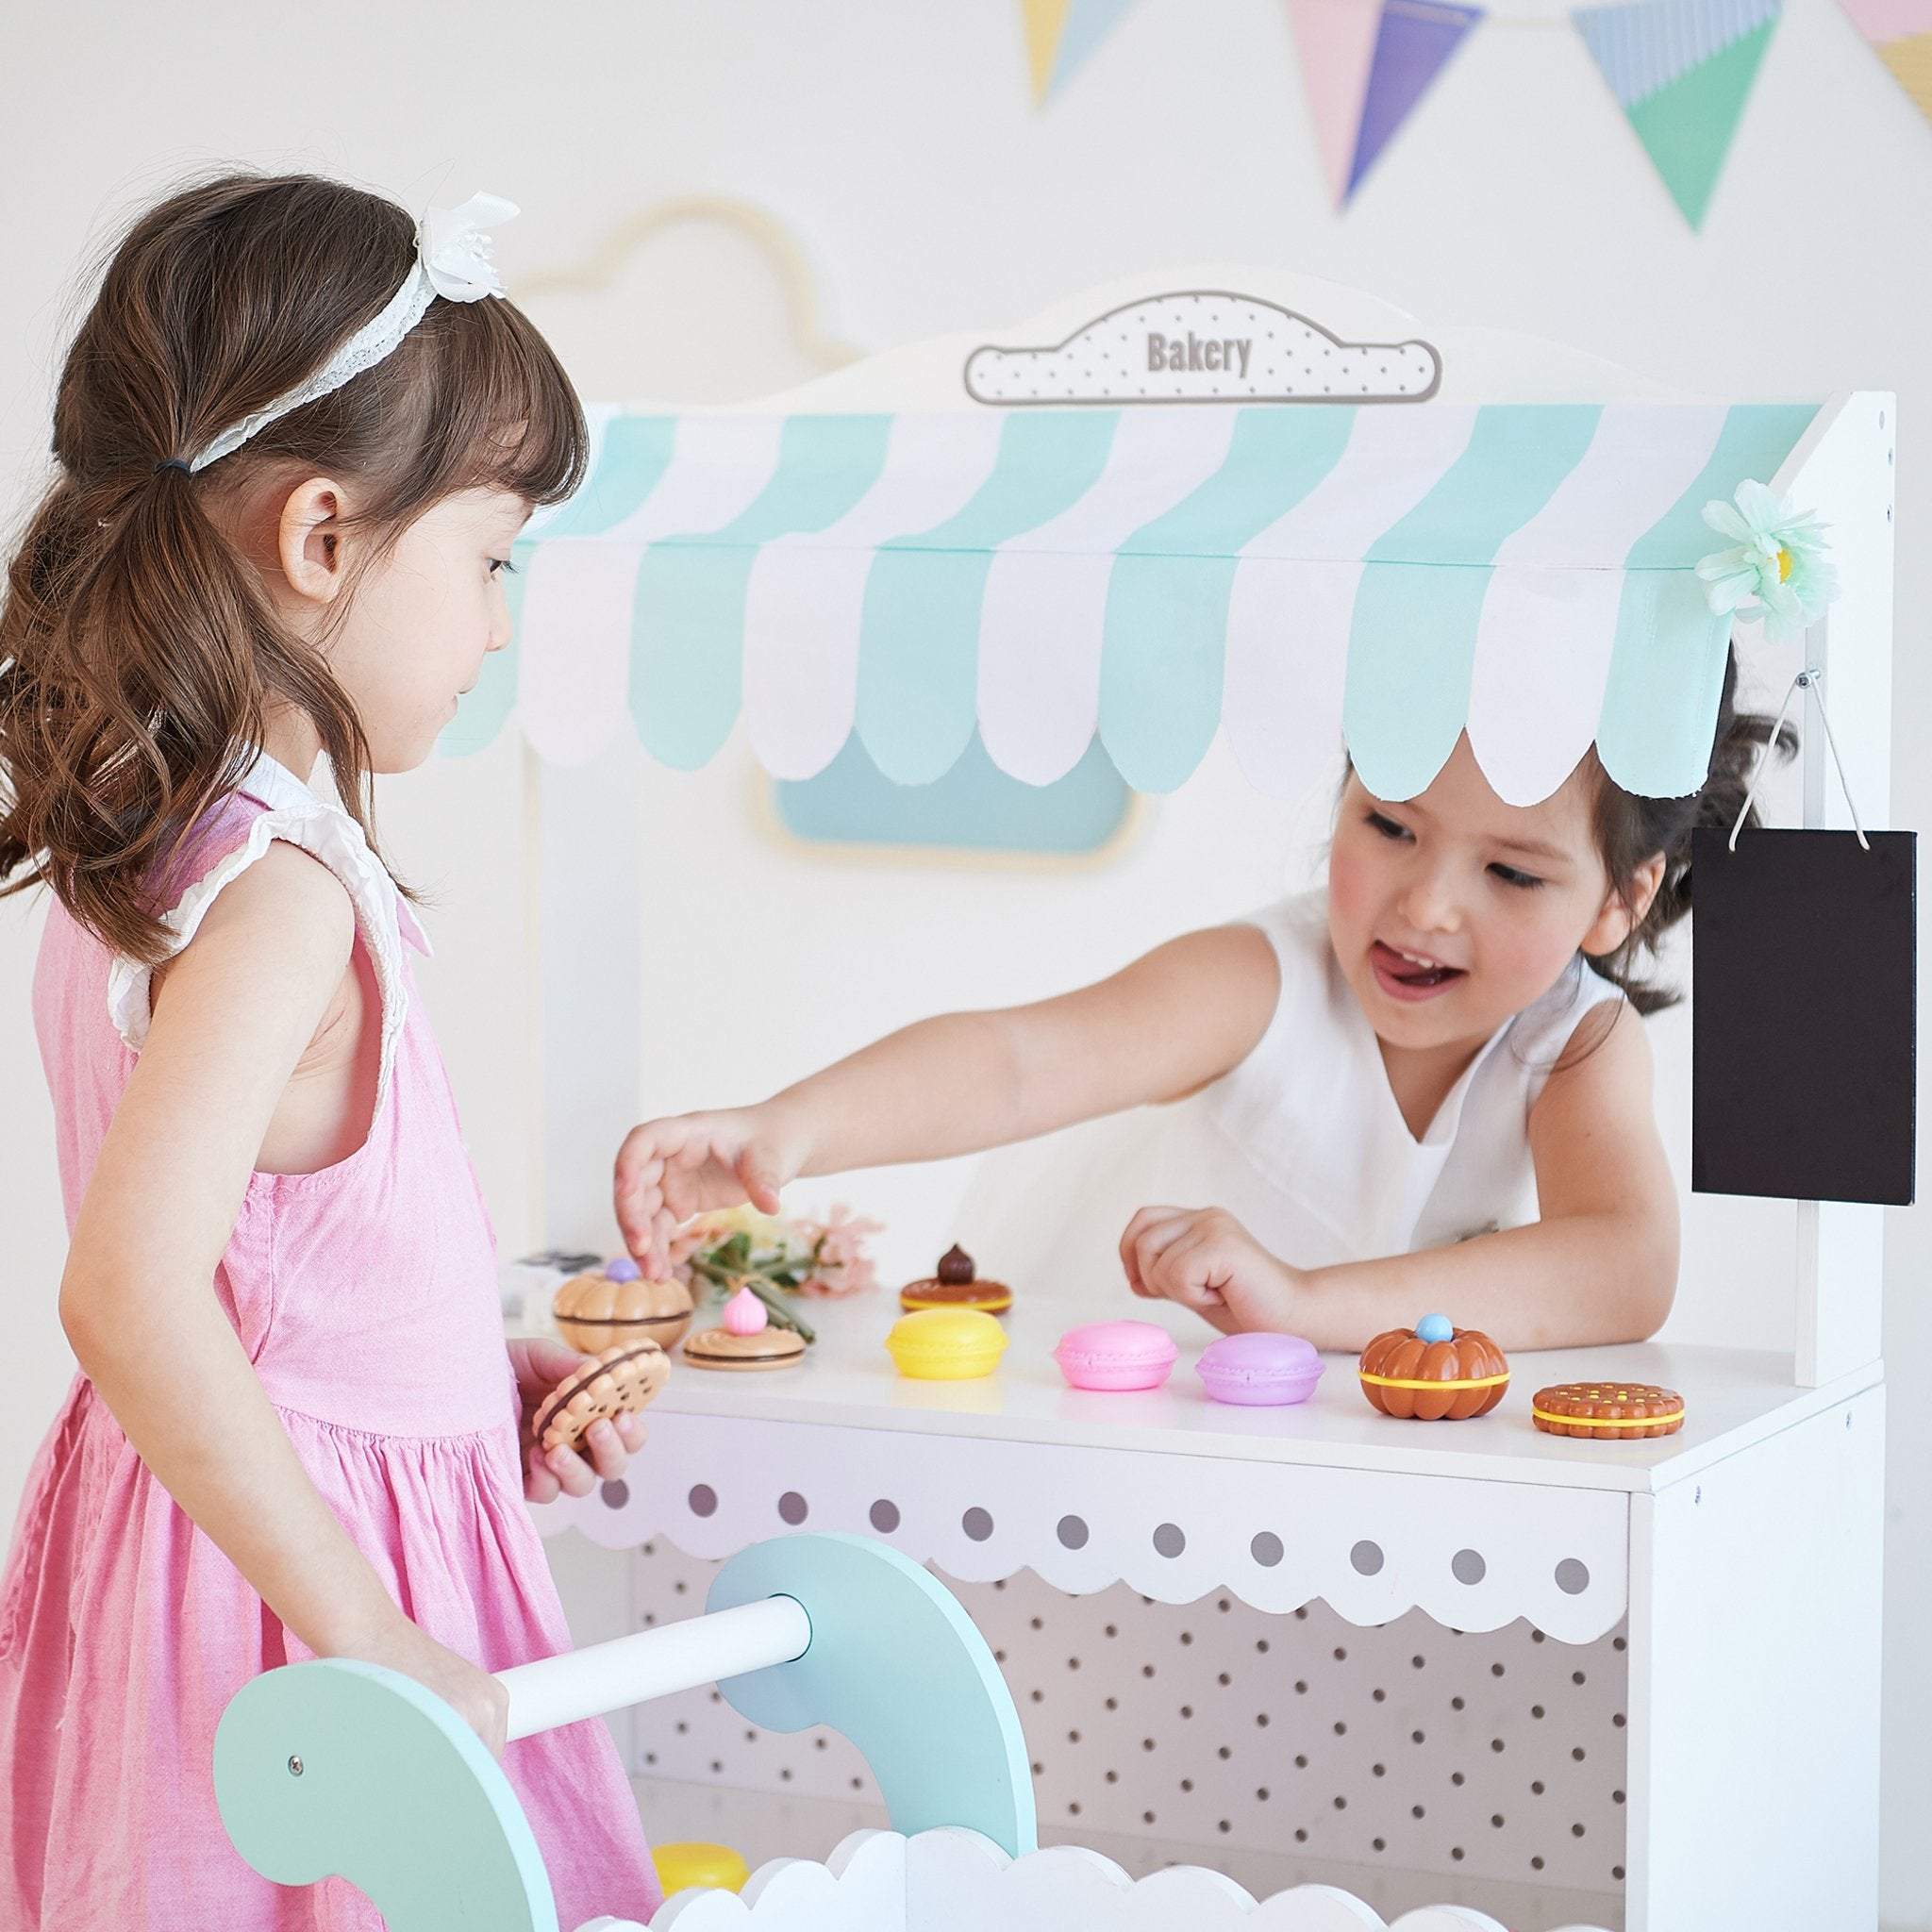 Load image into Gallery viewer, My Dream Bakery shop Dessert Stand - White / Petrol | Teamson Kids - Play Kitchen + Food